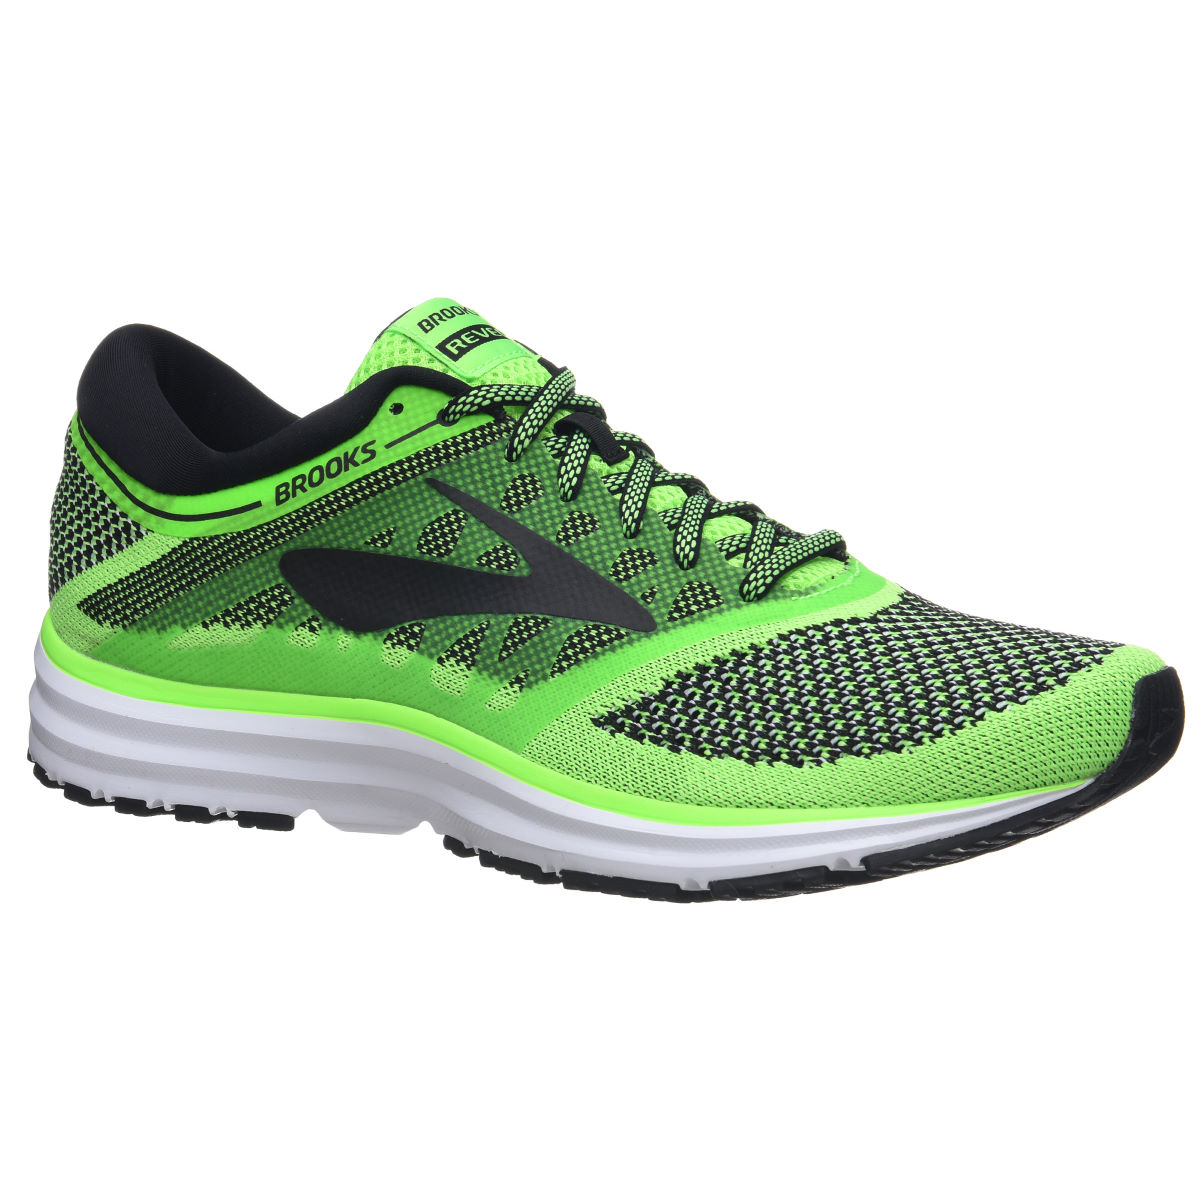 Brooks Revel Shoes - Zapatillas de running